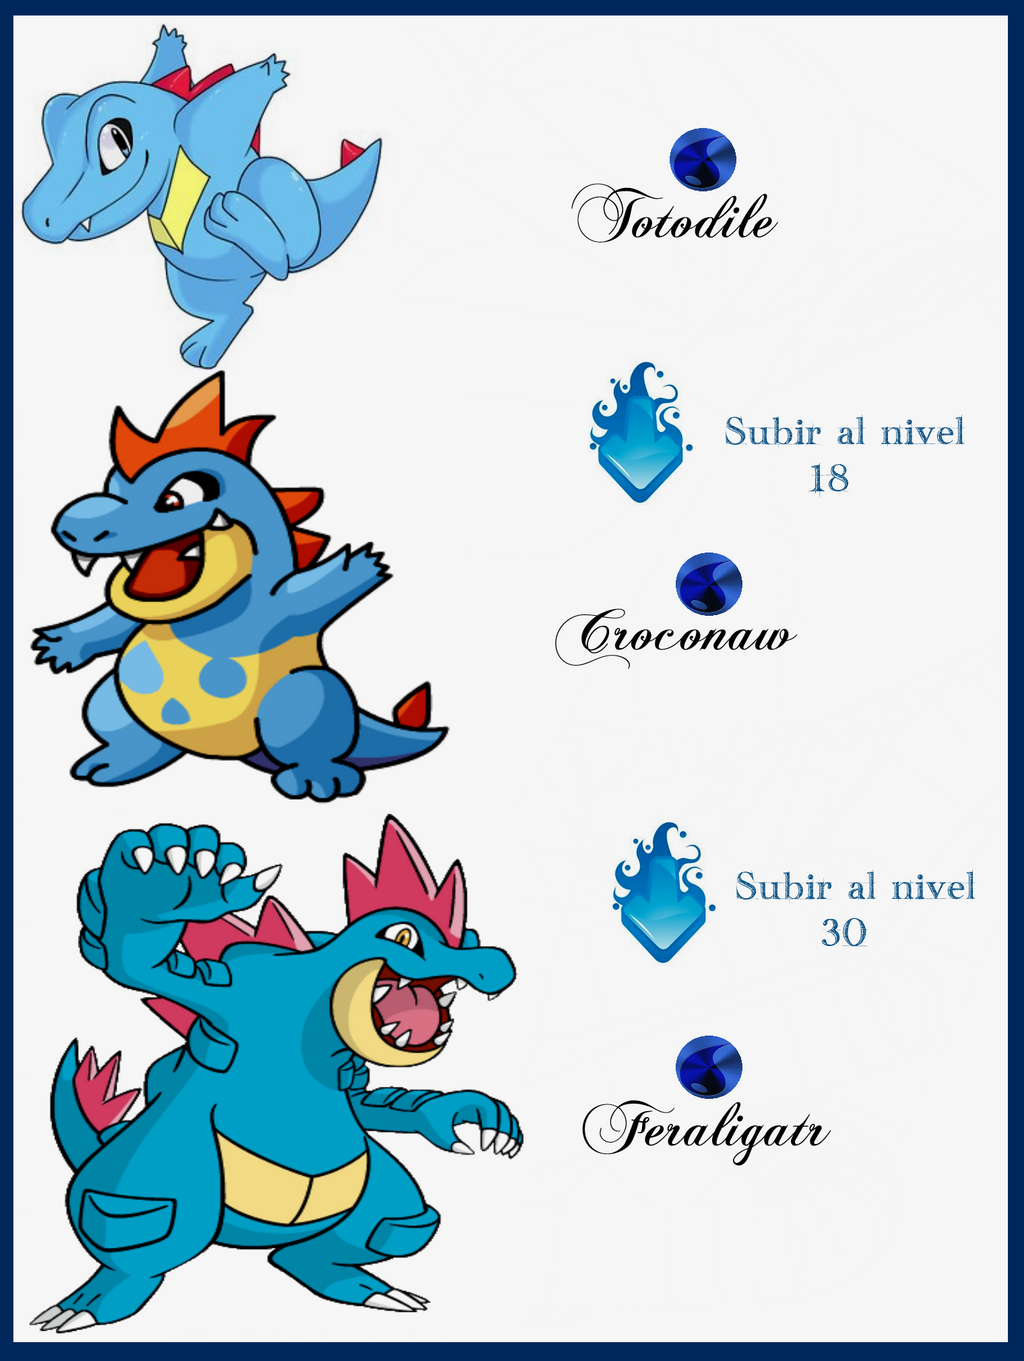 076 Totodile Evoluciones by Maxconnery on DeviantArt